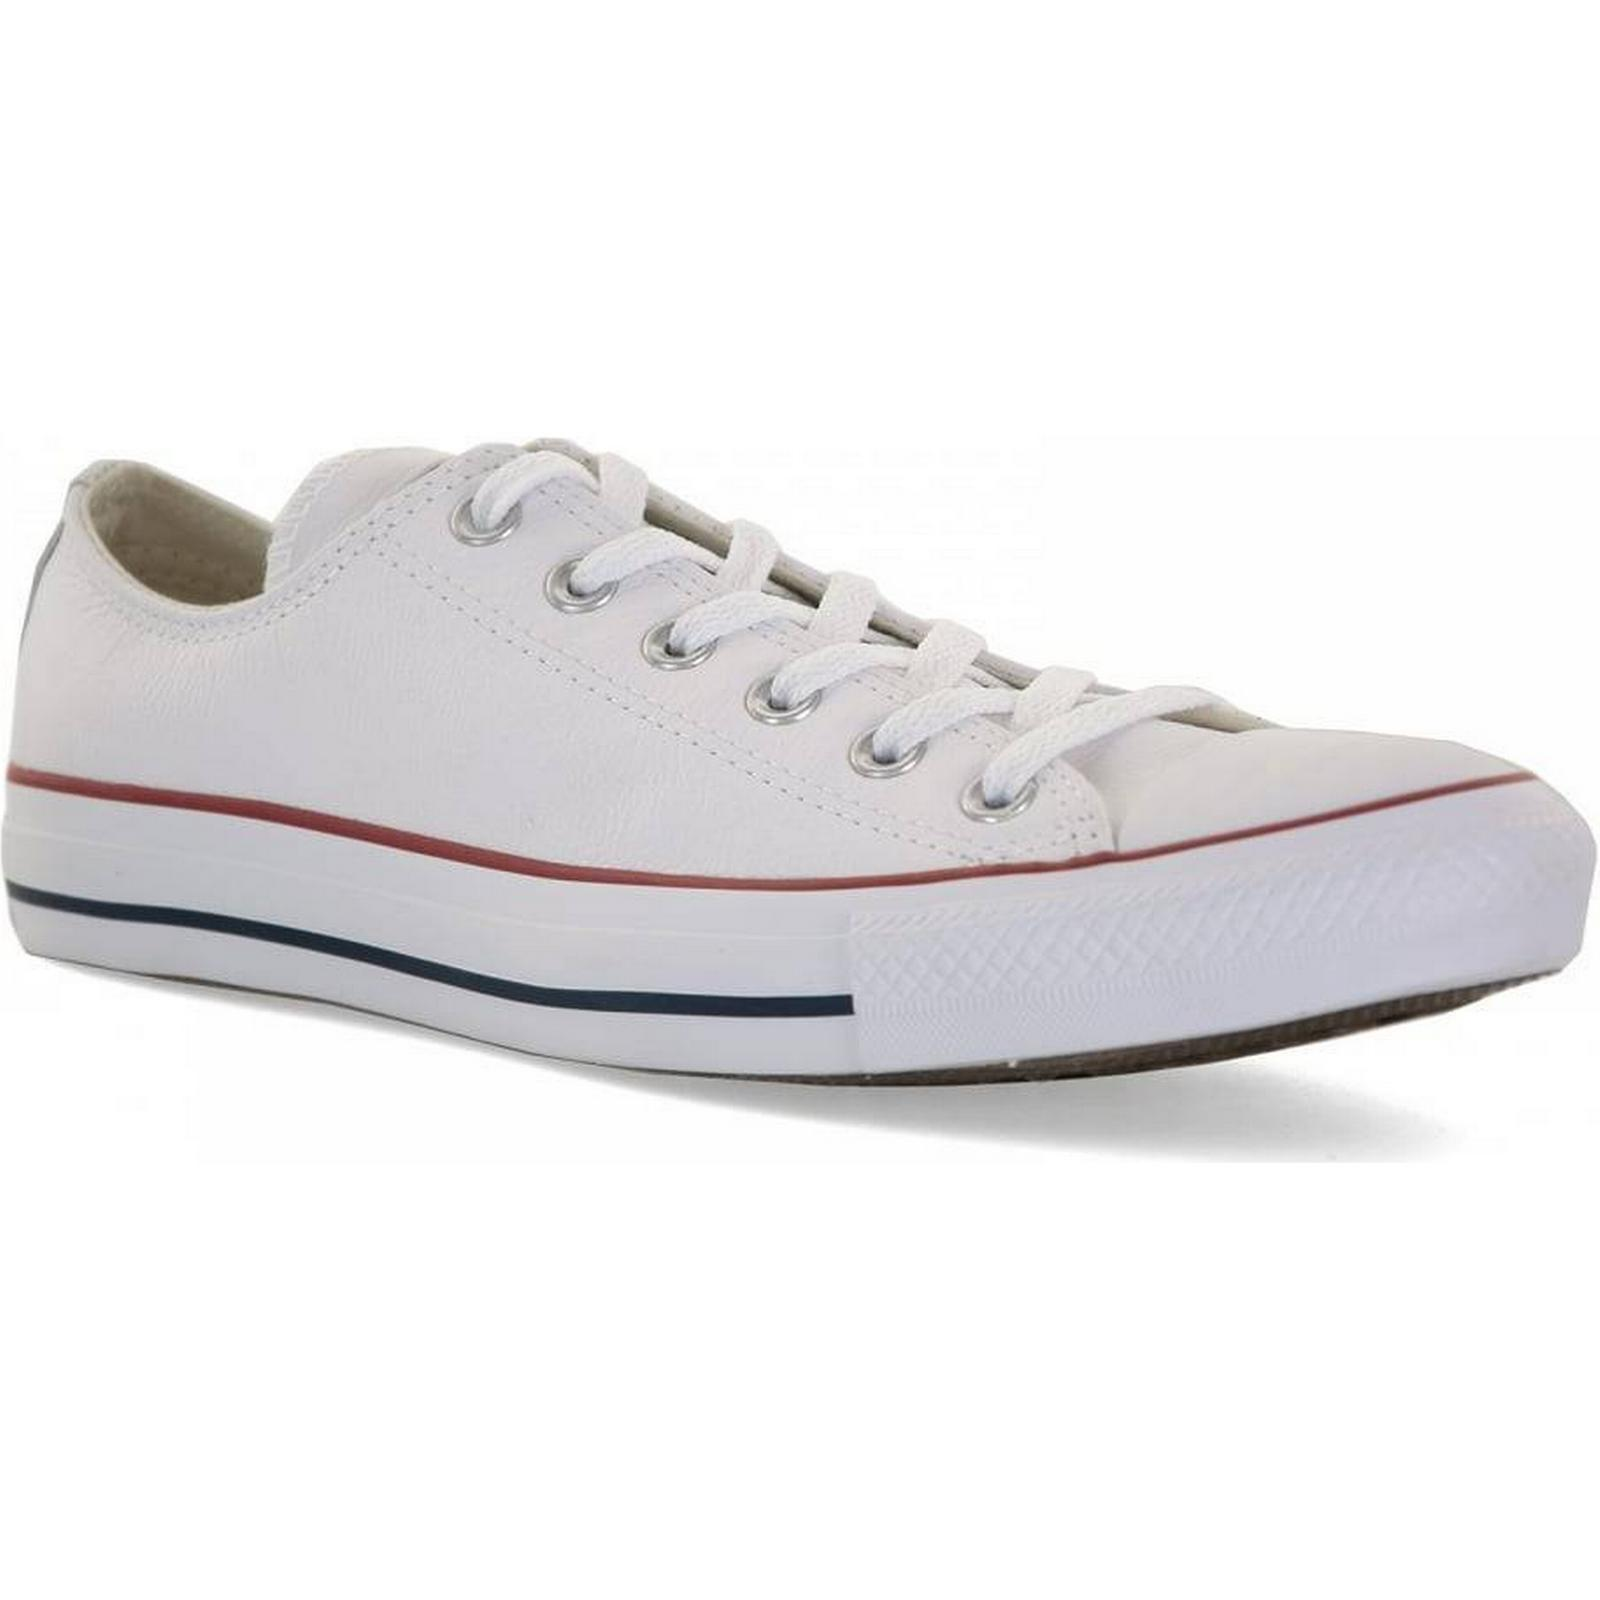 Converse Mens Core Leather OX Trainers 5 (White) Colour: WHITE, Size: 5 Trainers 16f480